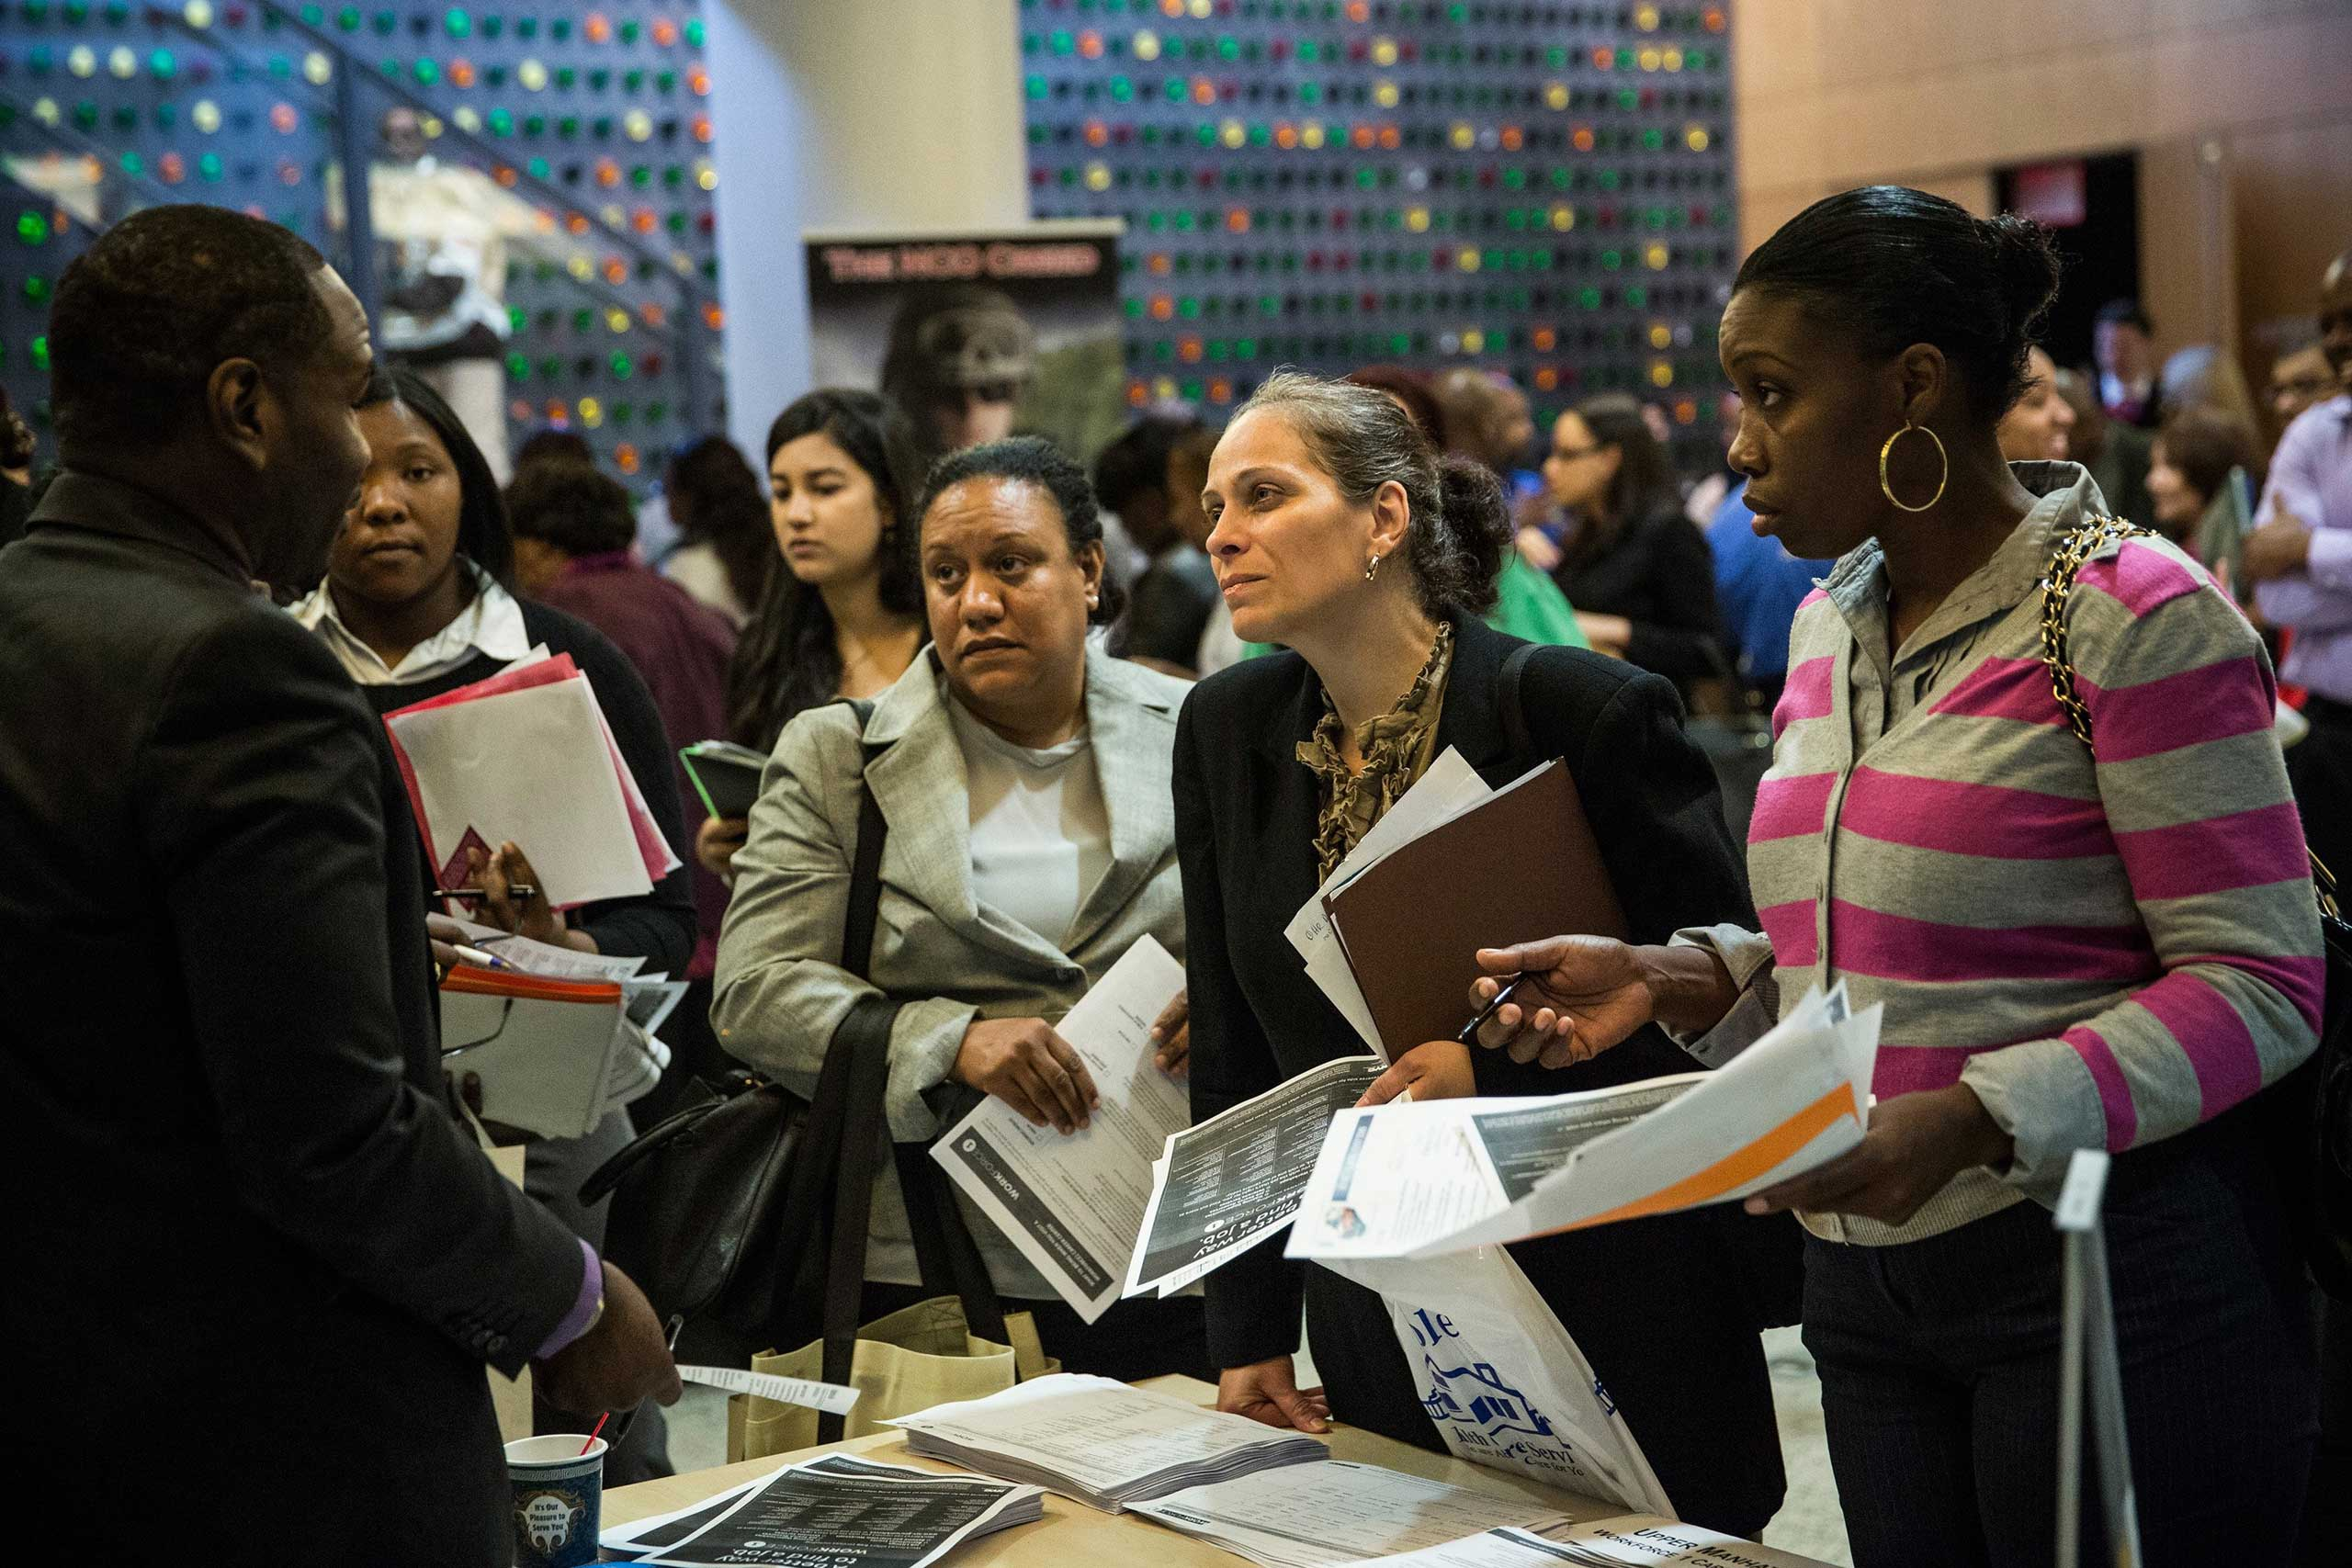 People attend a jobs fair at the Bronx Public Library on Sept. 17, 2014 in the Bronx Borough of New York City.